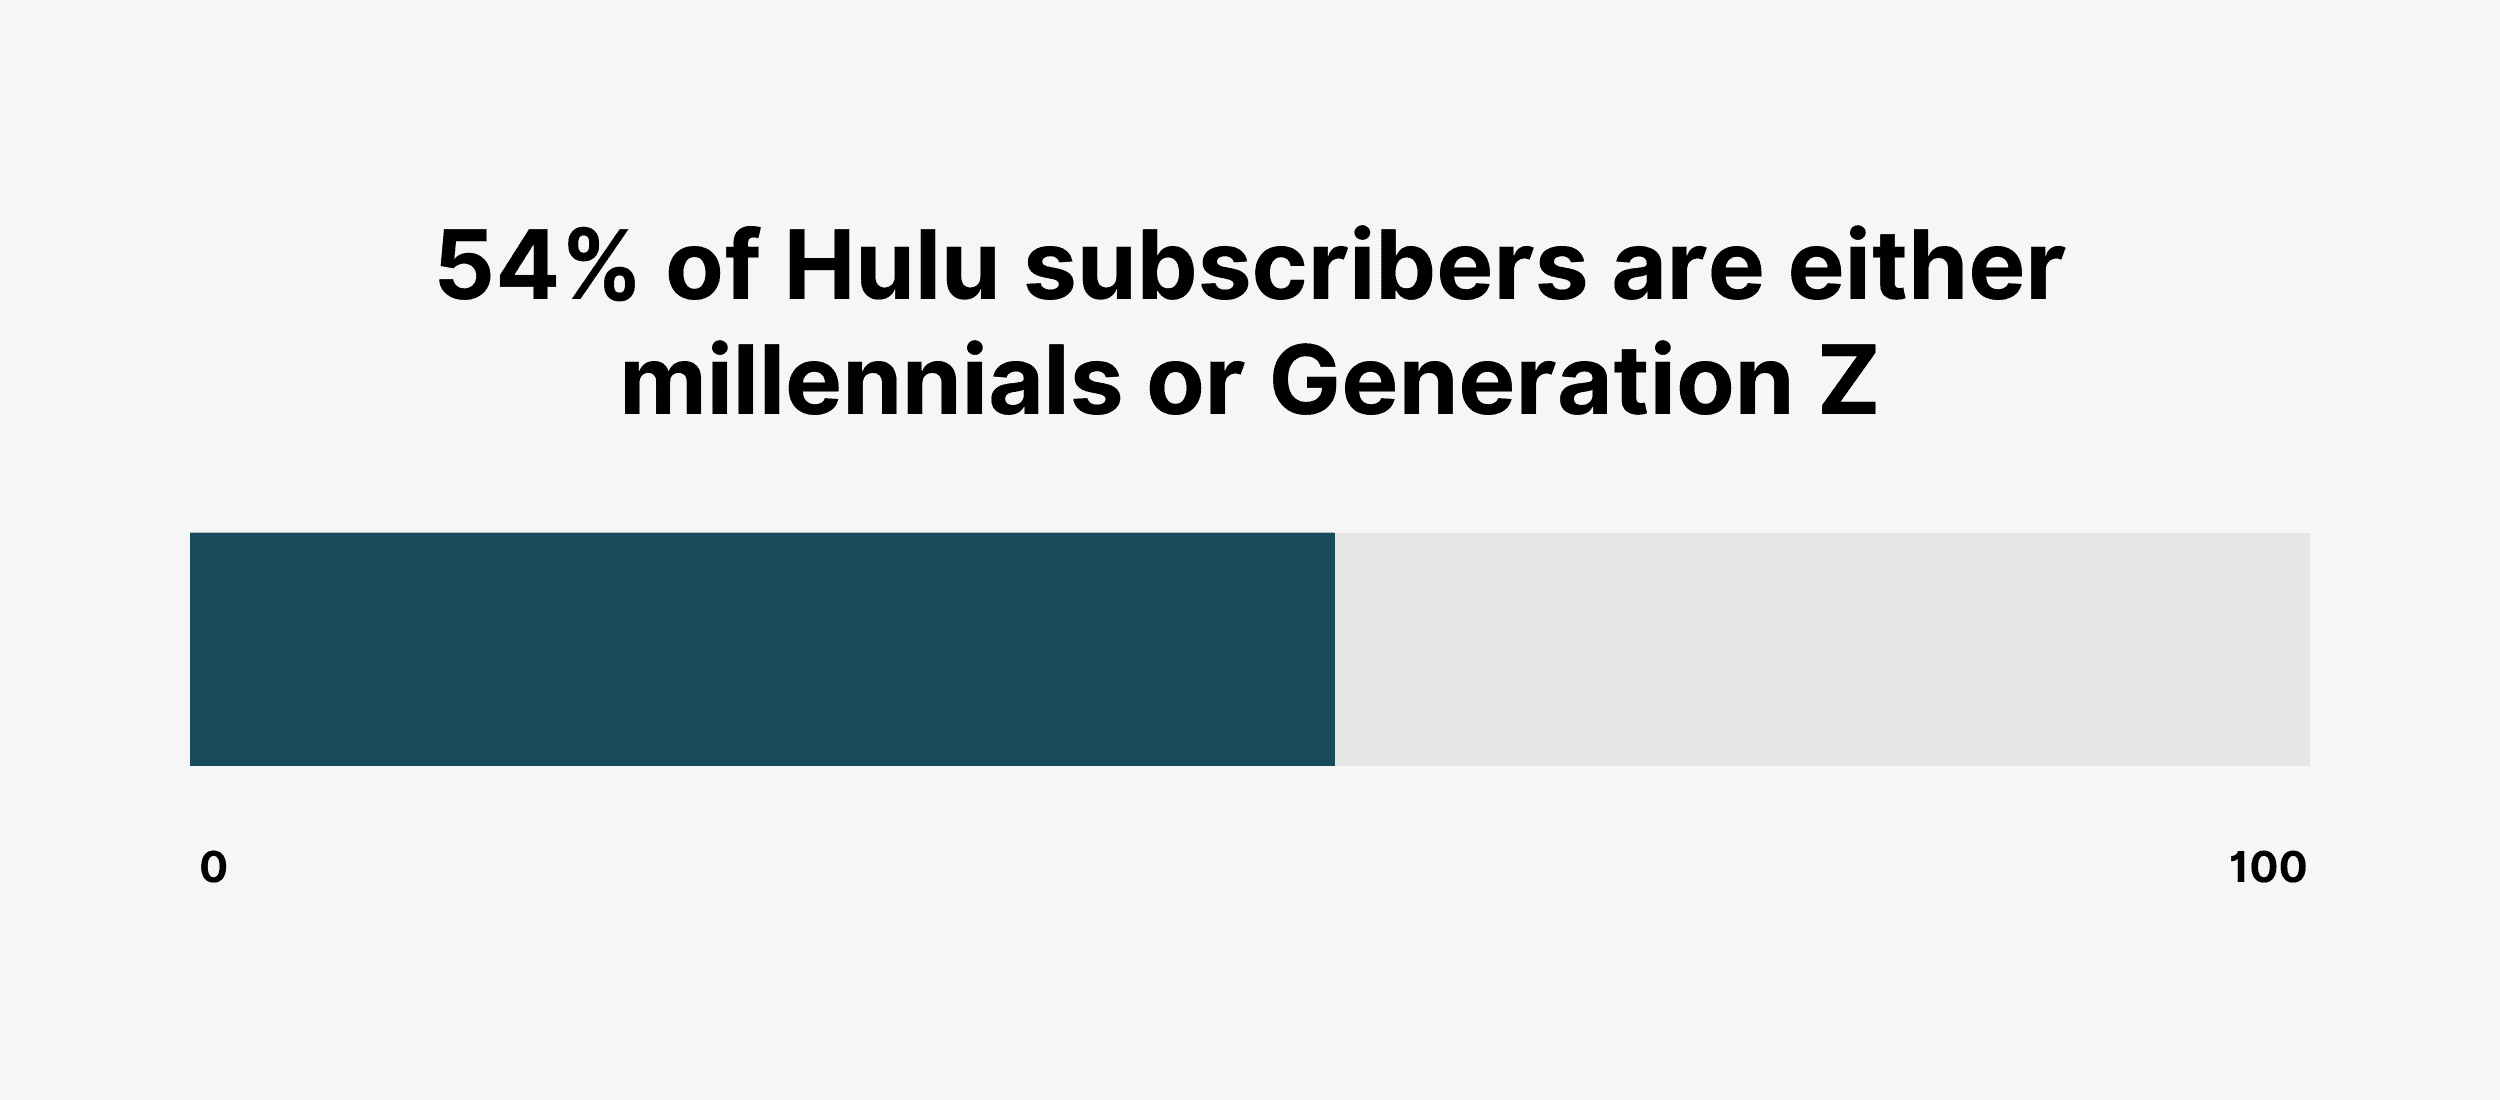 54% of Hulu subscribers are either millennials or Generation Z